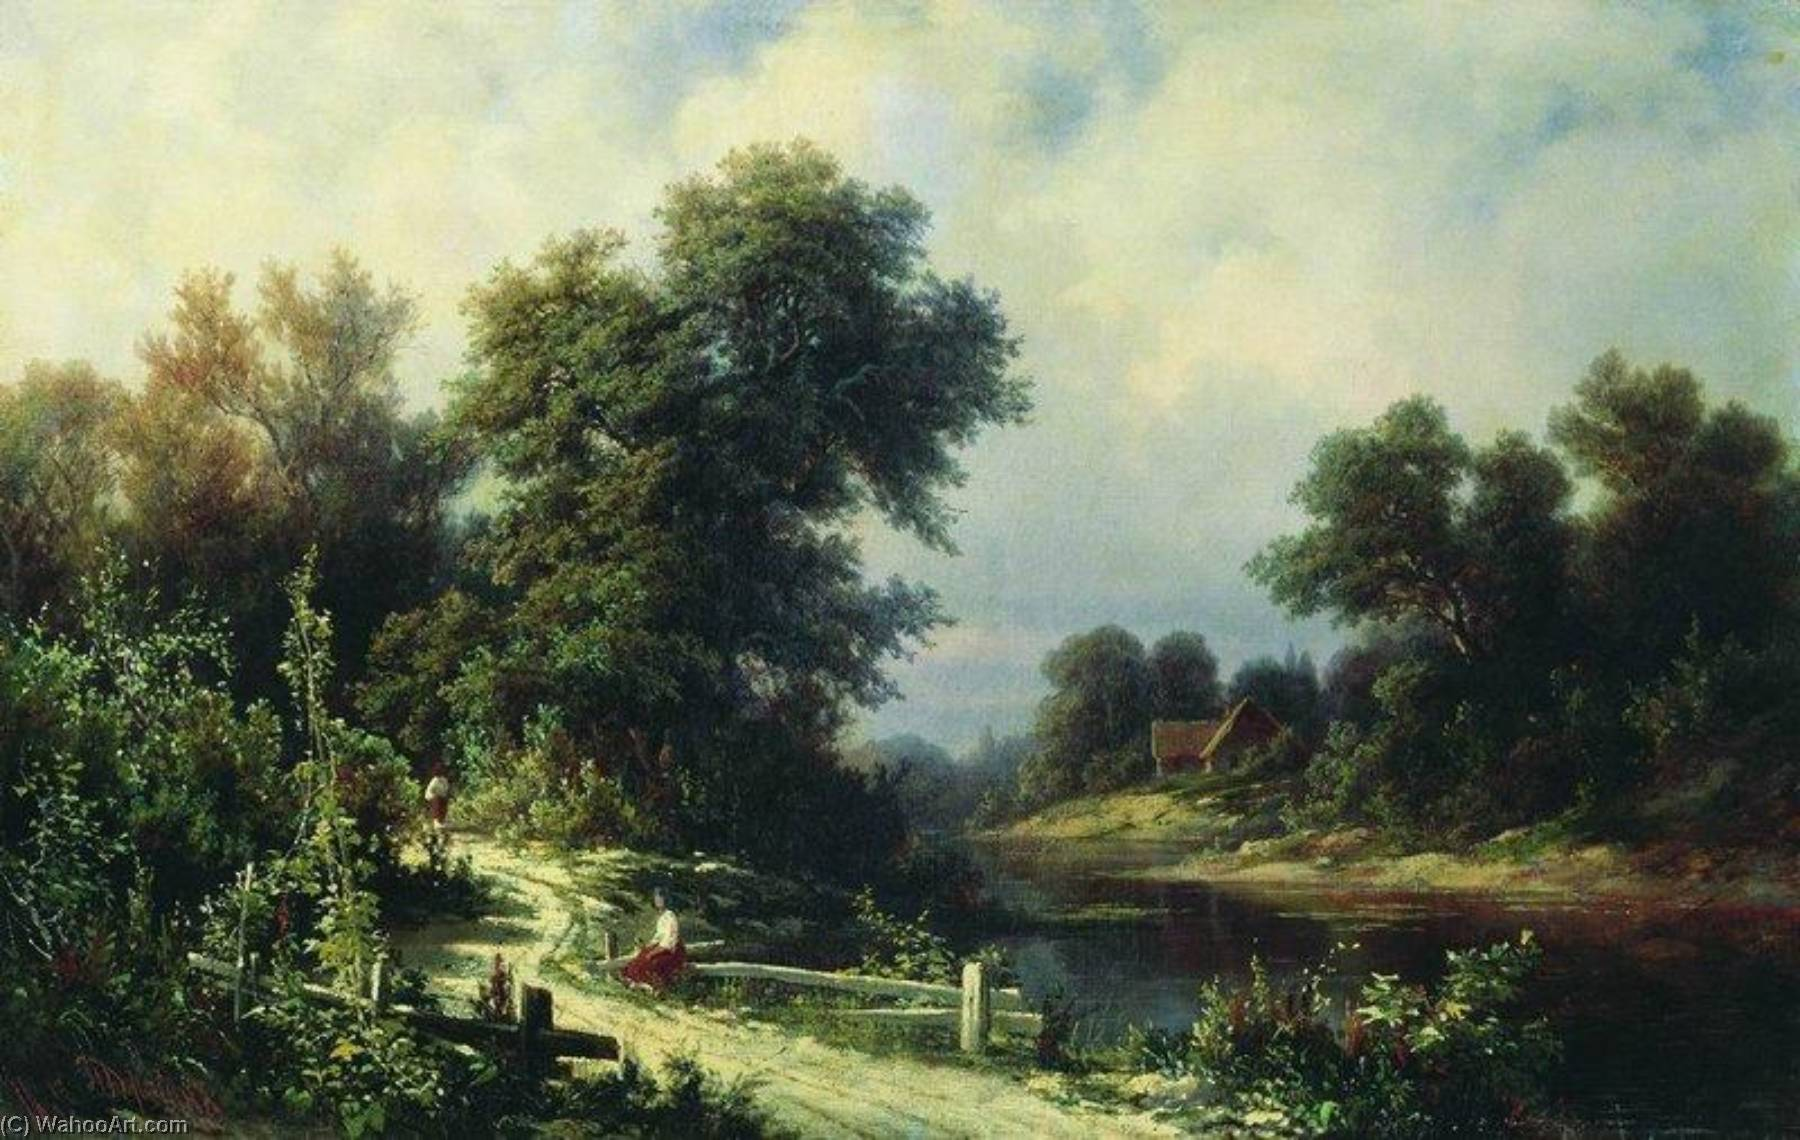 Landscape with River, 1865 by Pavel Dzhogin | Oil Painting | WahooArt.com